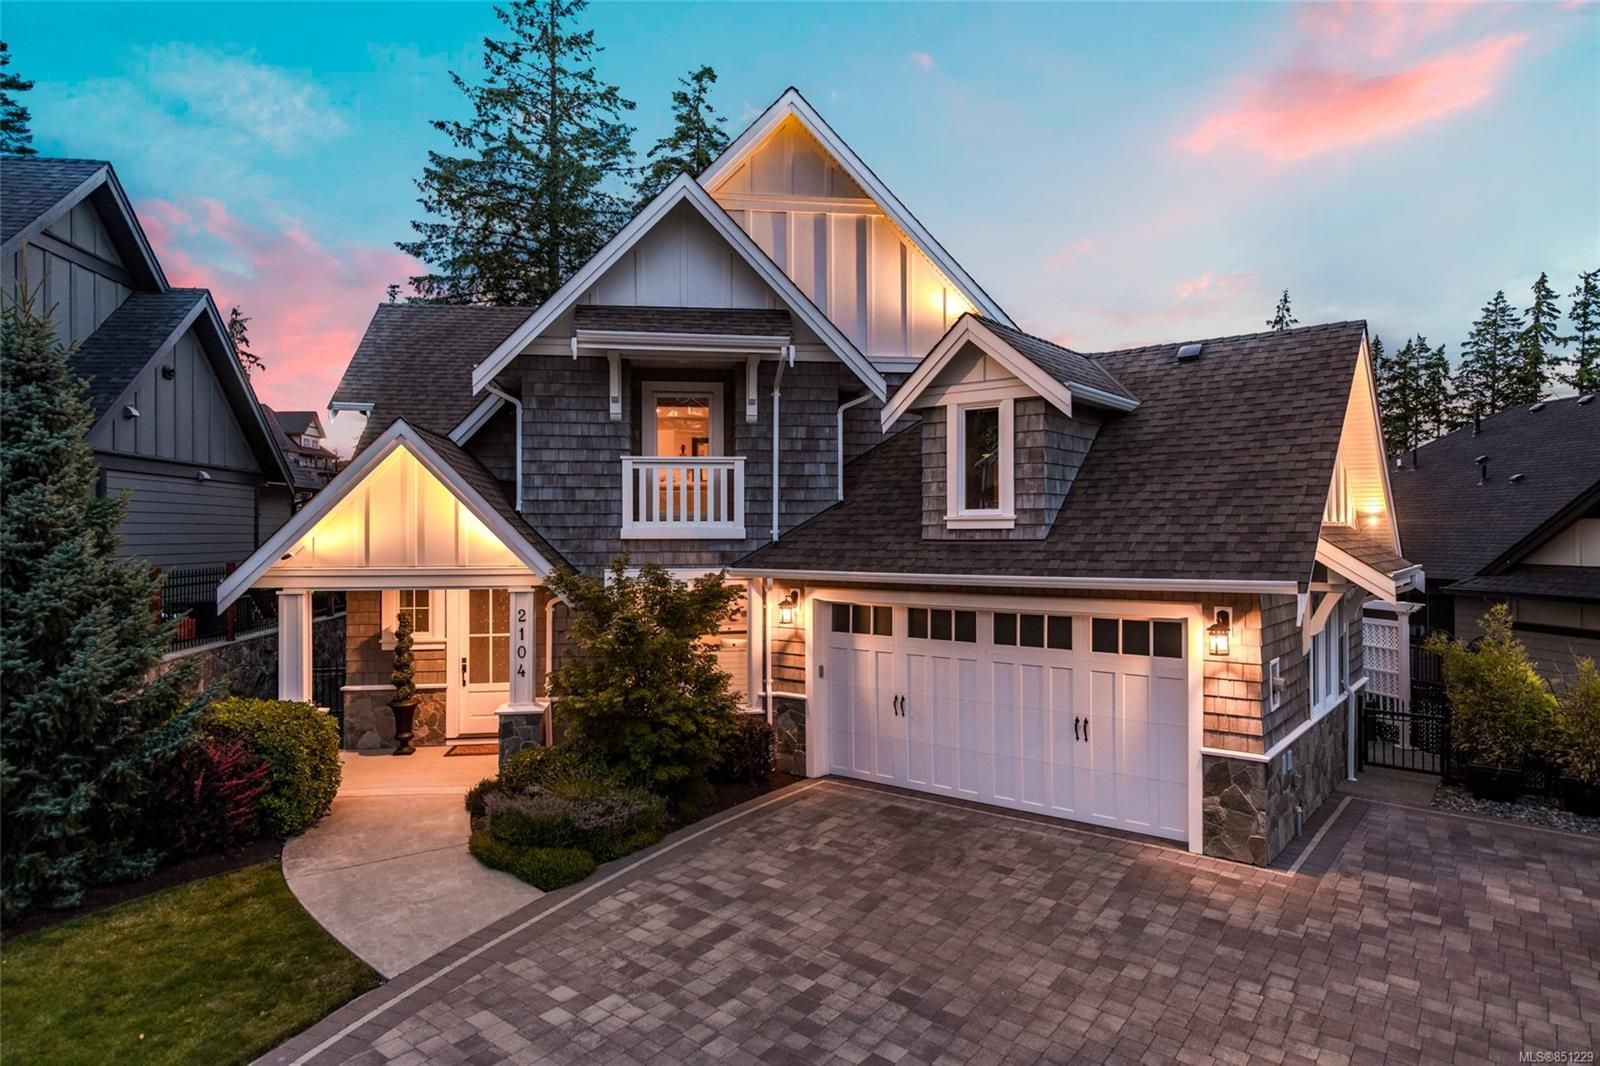 Main Photo: 2104 Champions Way in : La Bear Mountain House for sale (Langford)  : MLS®# 851229